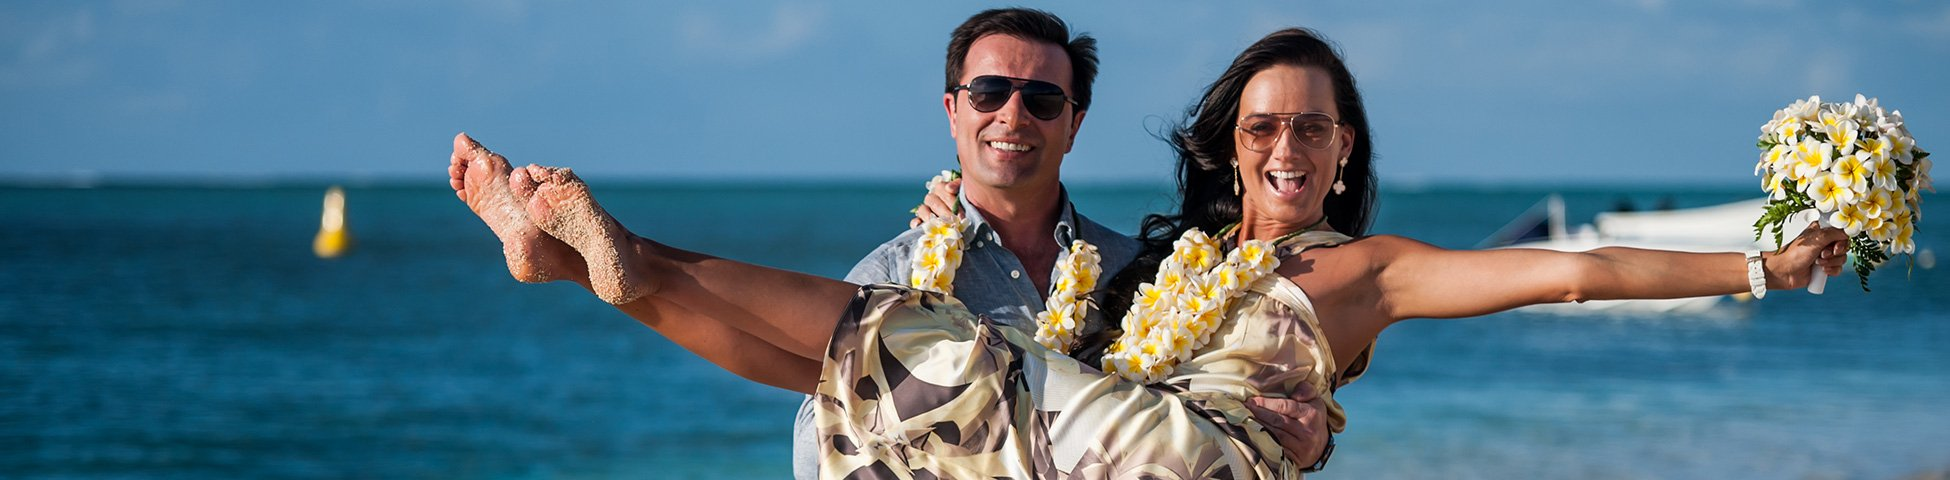 Elite Voyage organize unique and unforgettable weddings in Mauritius